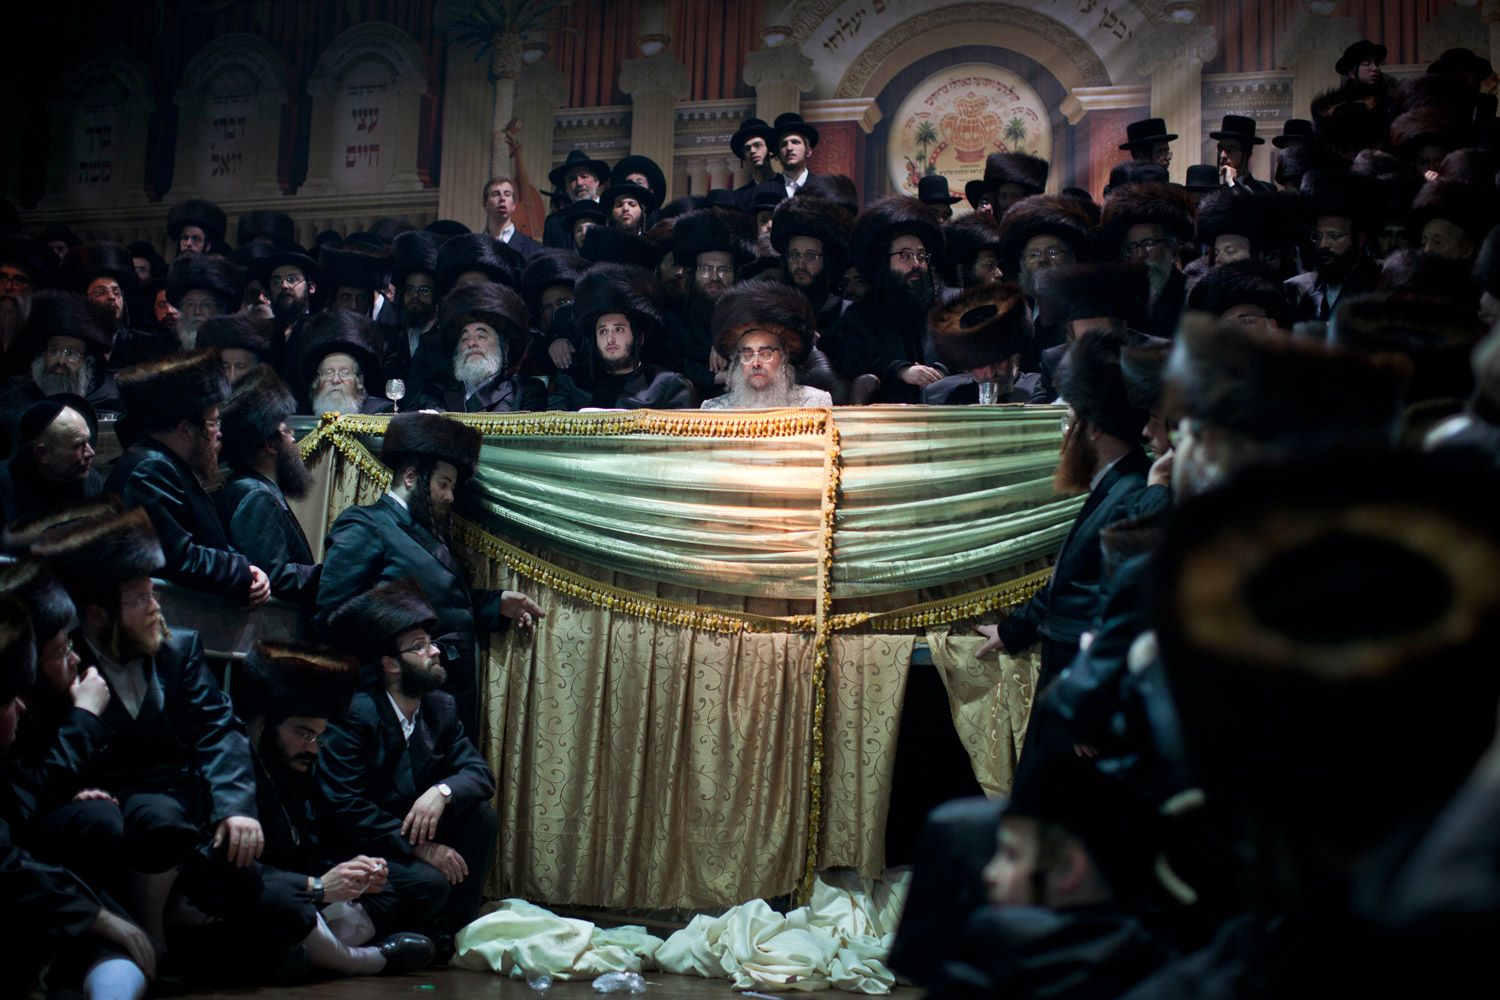 Feb. 14, 2012. Ultra-Orthodox Jews gather for the traditional Jewish wedding for Chananya Yom Tov Lipa, the great-grandson of the Rabbi of the Wiznitz Hasidic followers, in the Israeli town of Petah Tikva near Tel Aviv.